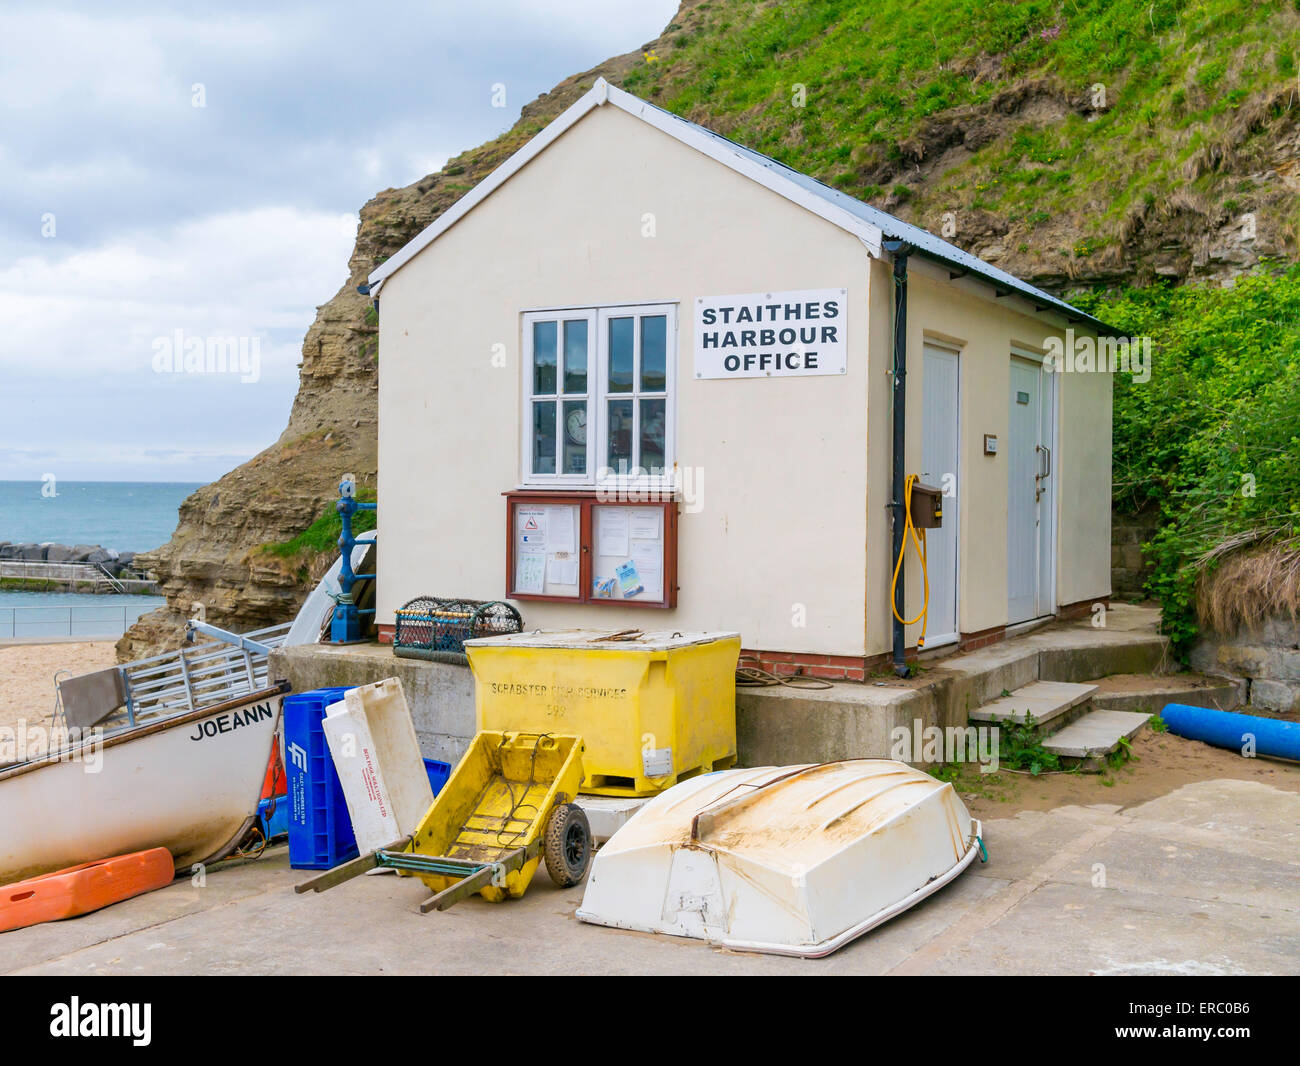 The harbour office in the North Yorkshire seaside village of Staithes - Stock Image